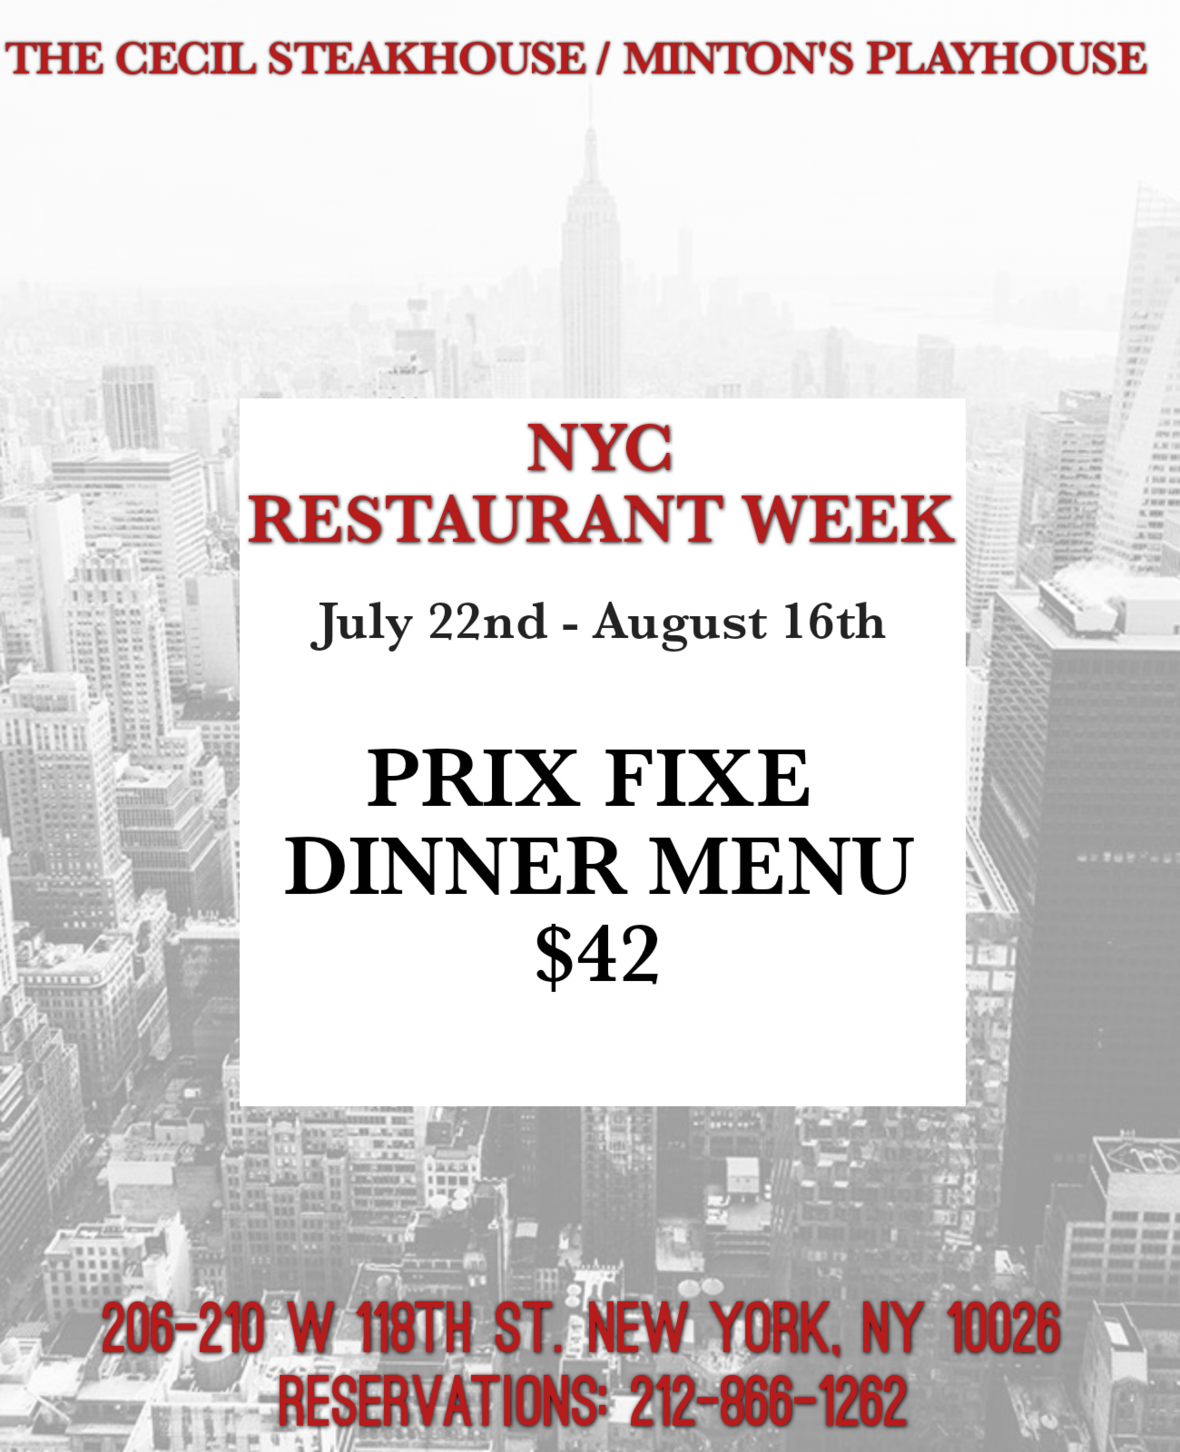 Restaurant Week The Cecil Steakhouse